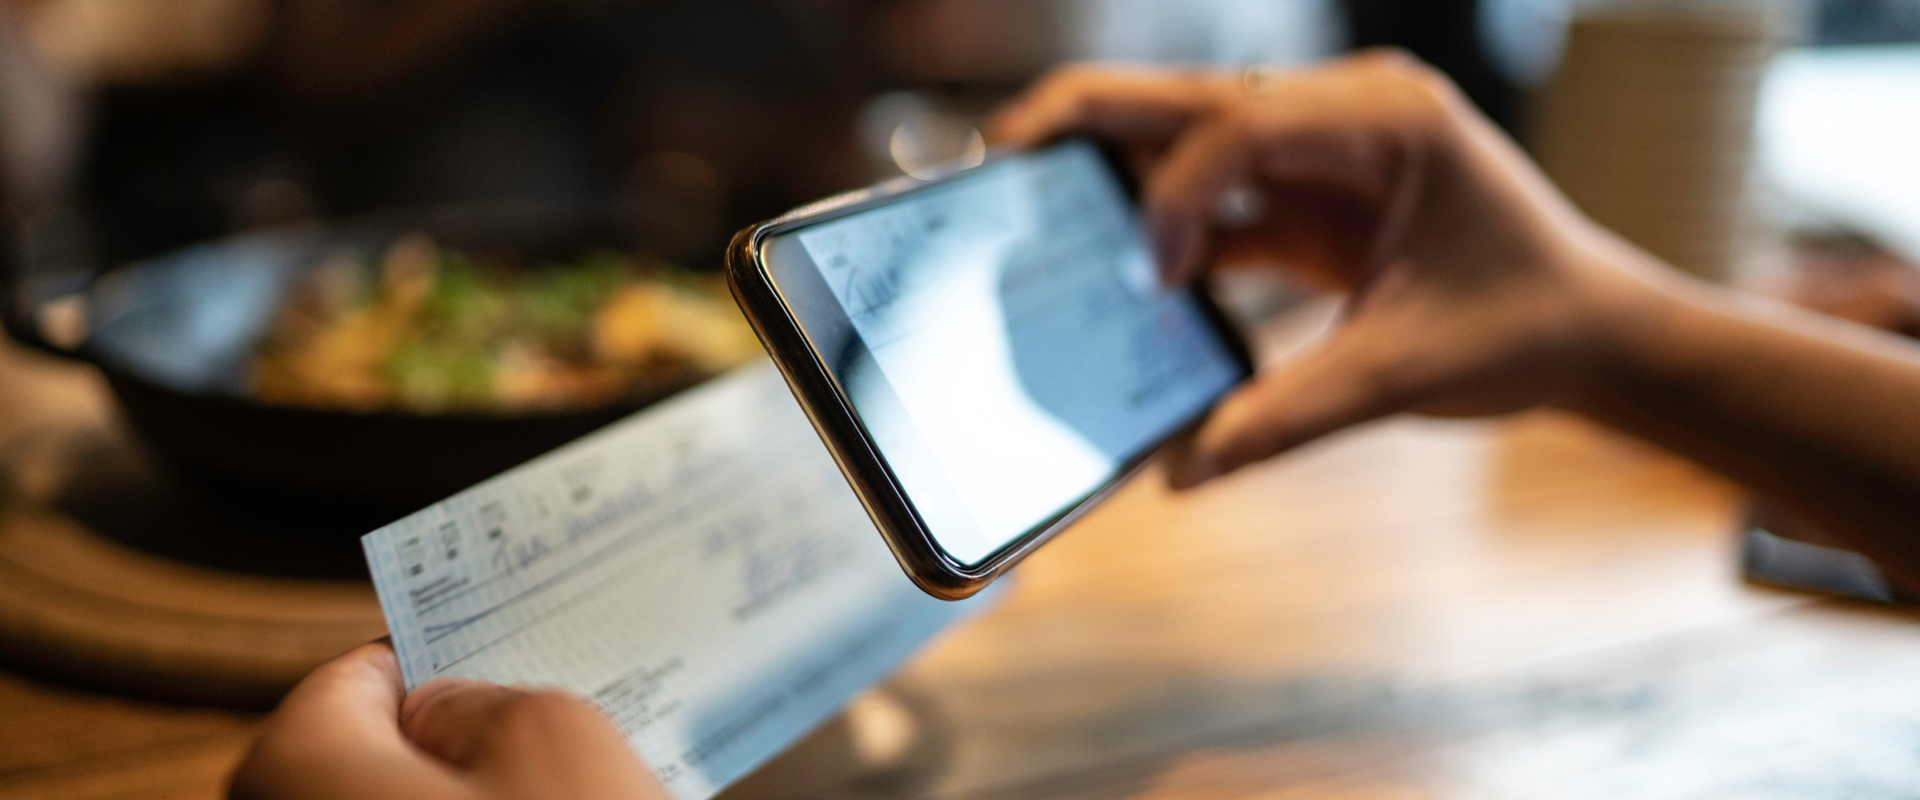 Deposit checks right from your phone